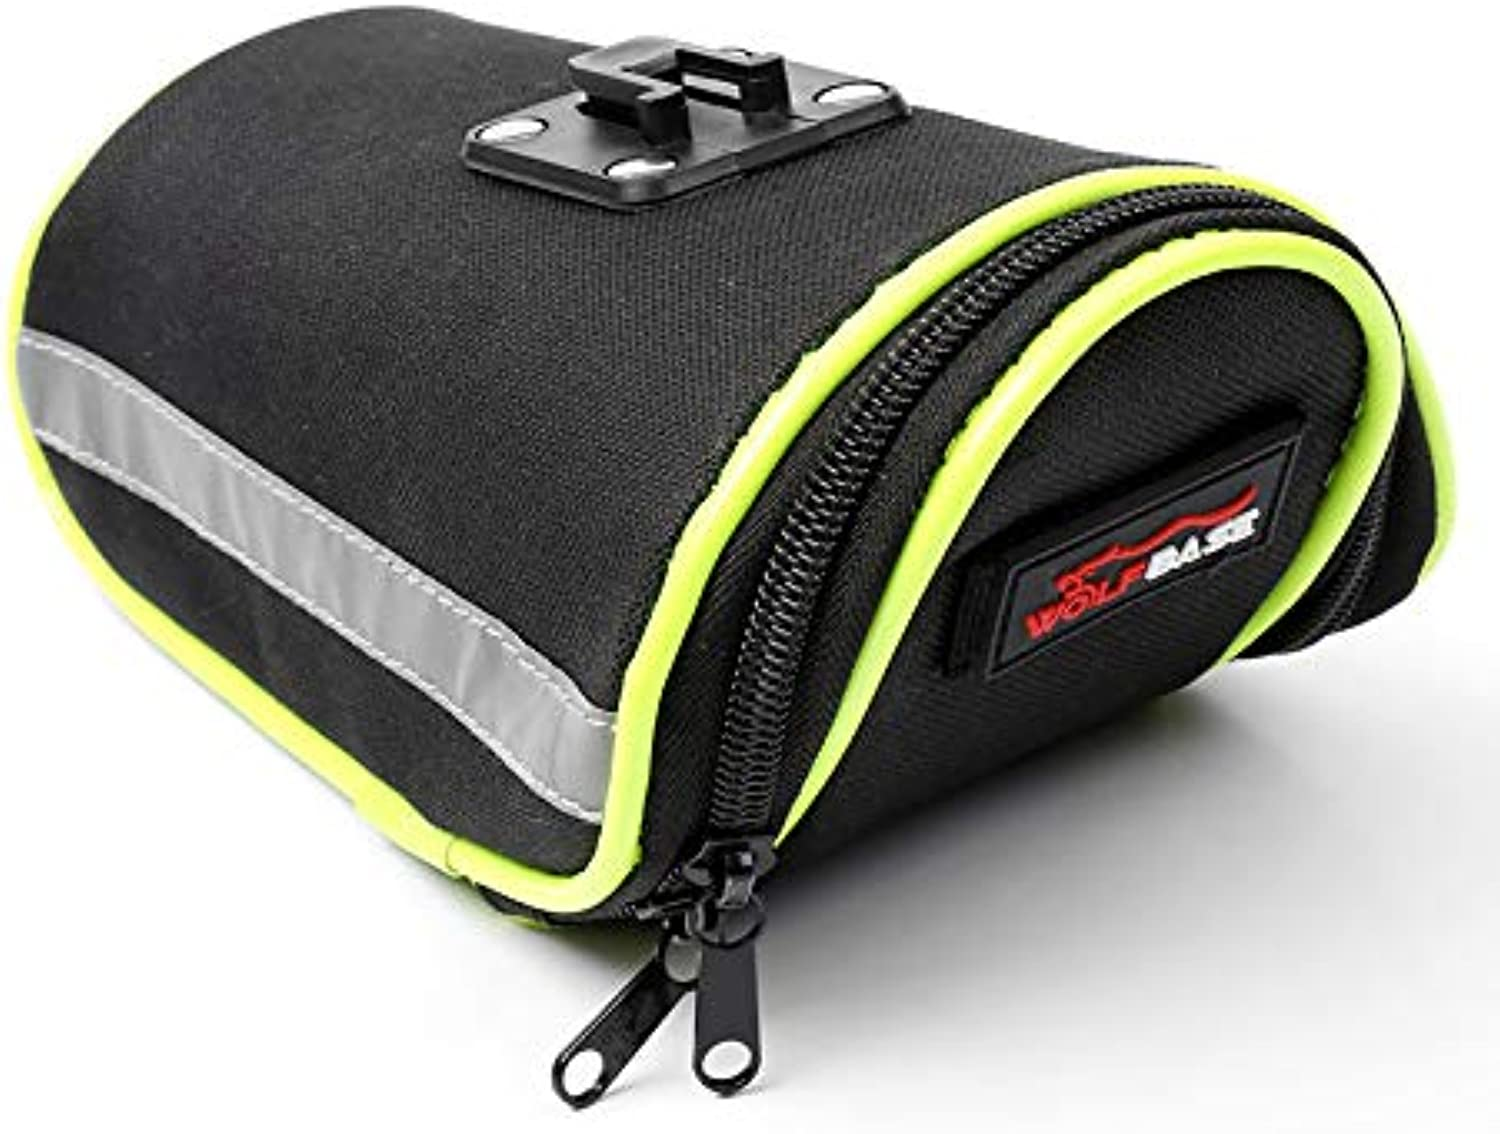 Bicycle Mountain Bike Bag After The Shelf Package Large Capacity Waterproof LongDistance Riding Camel Bag Bicycle Equipment